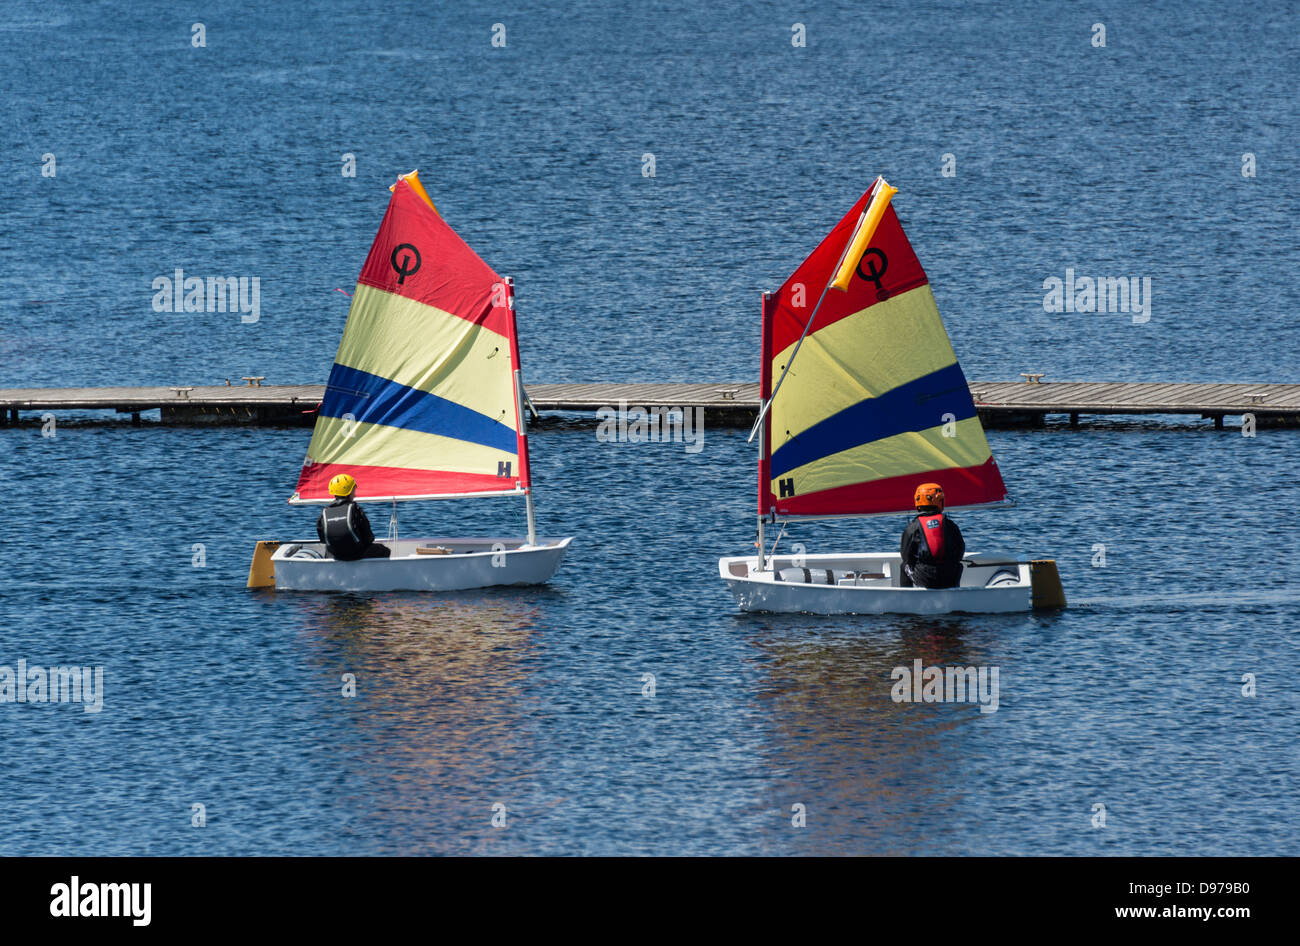 Youngsters practising yachting skills near the jetty at Kielder Water Sailing Club - Stock Image